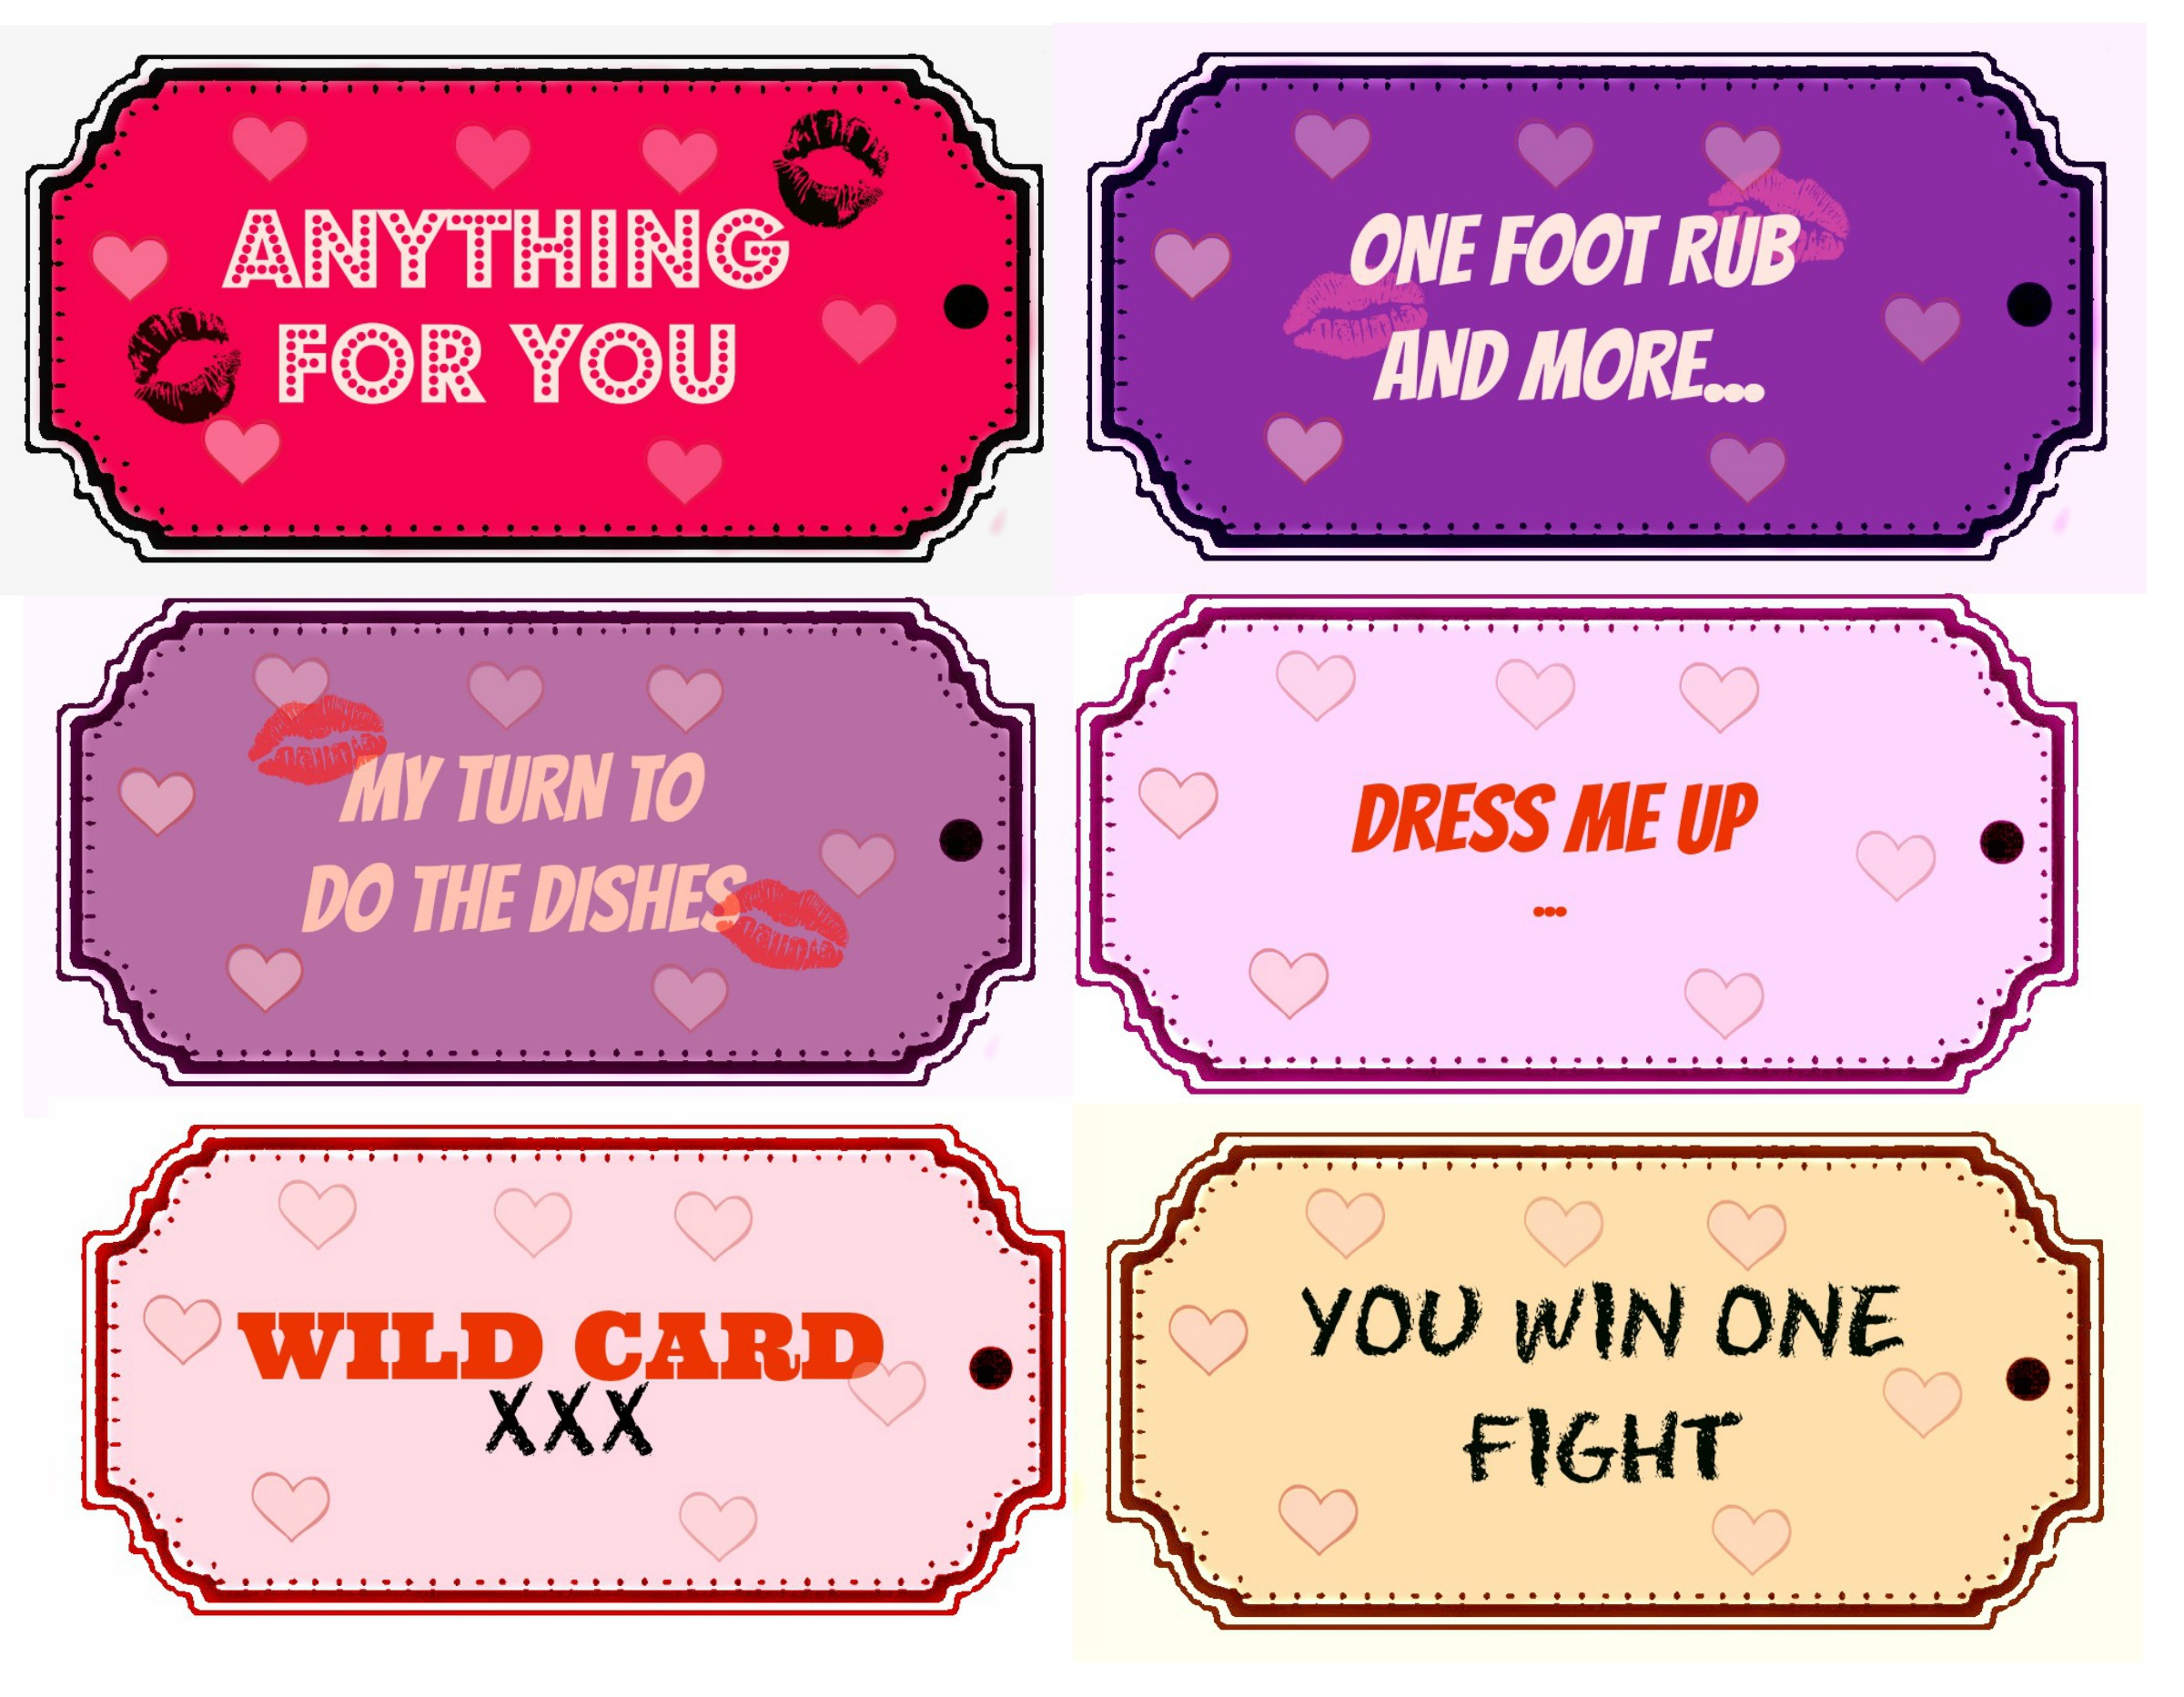 Sex coupons for your boyfriend